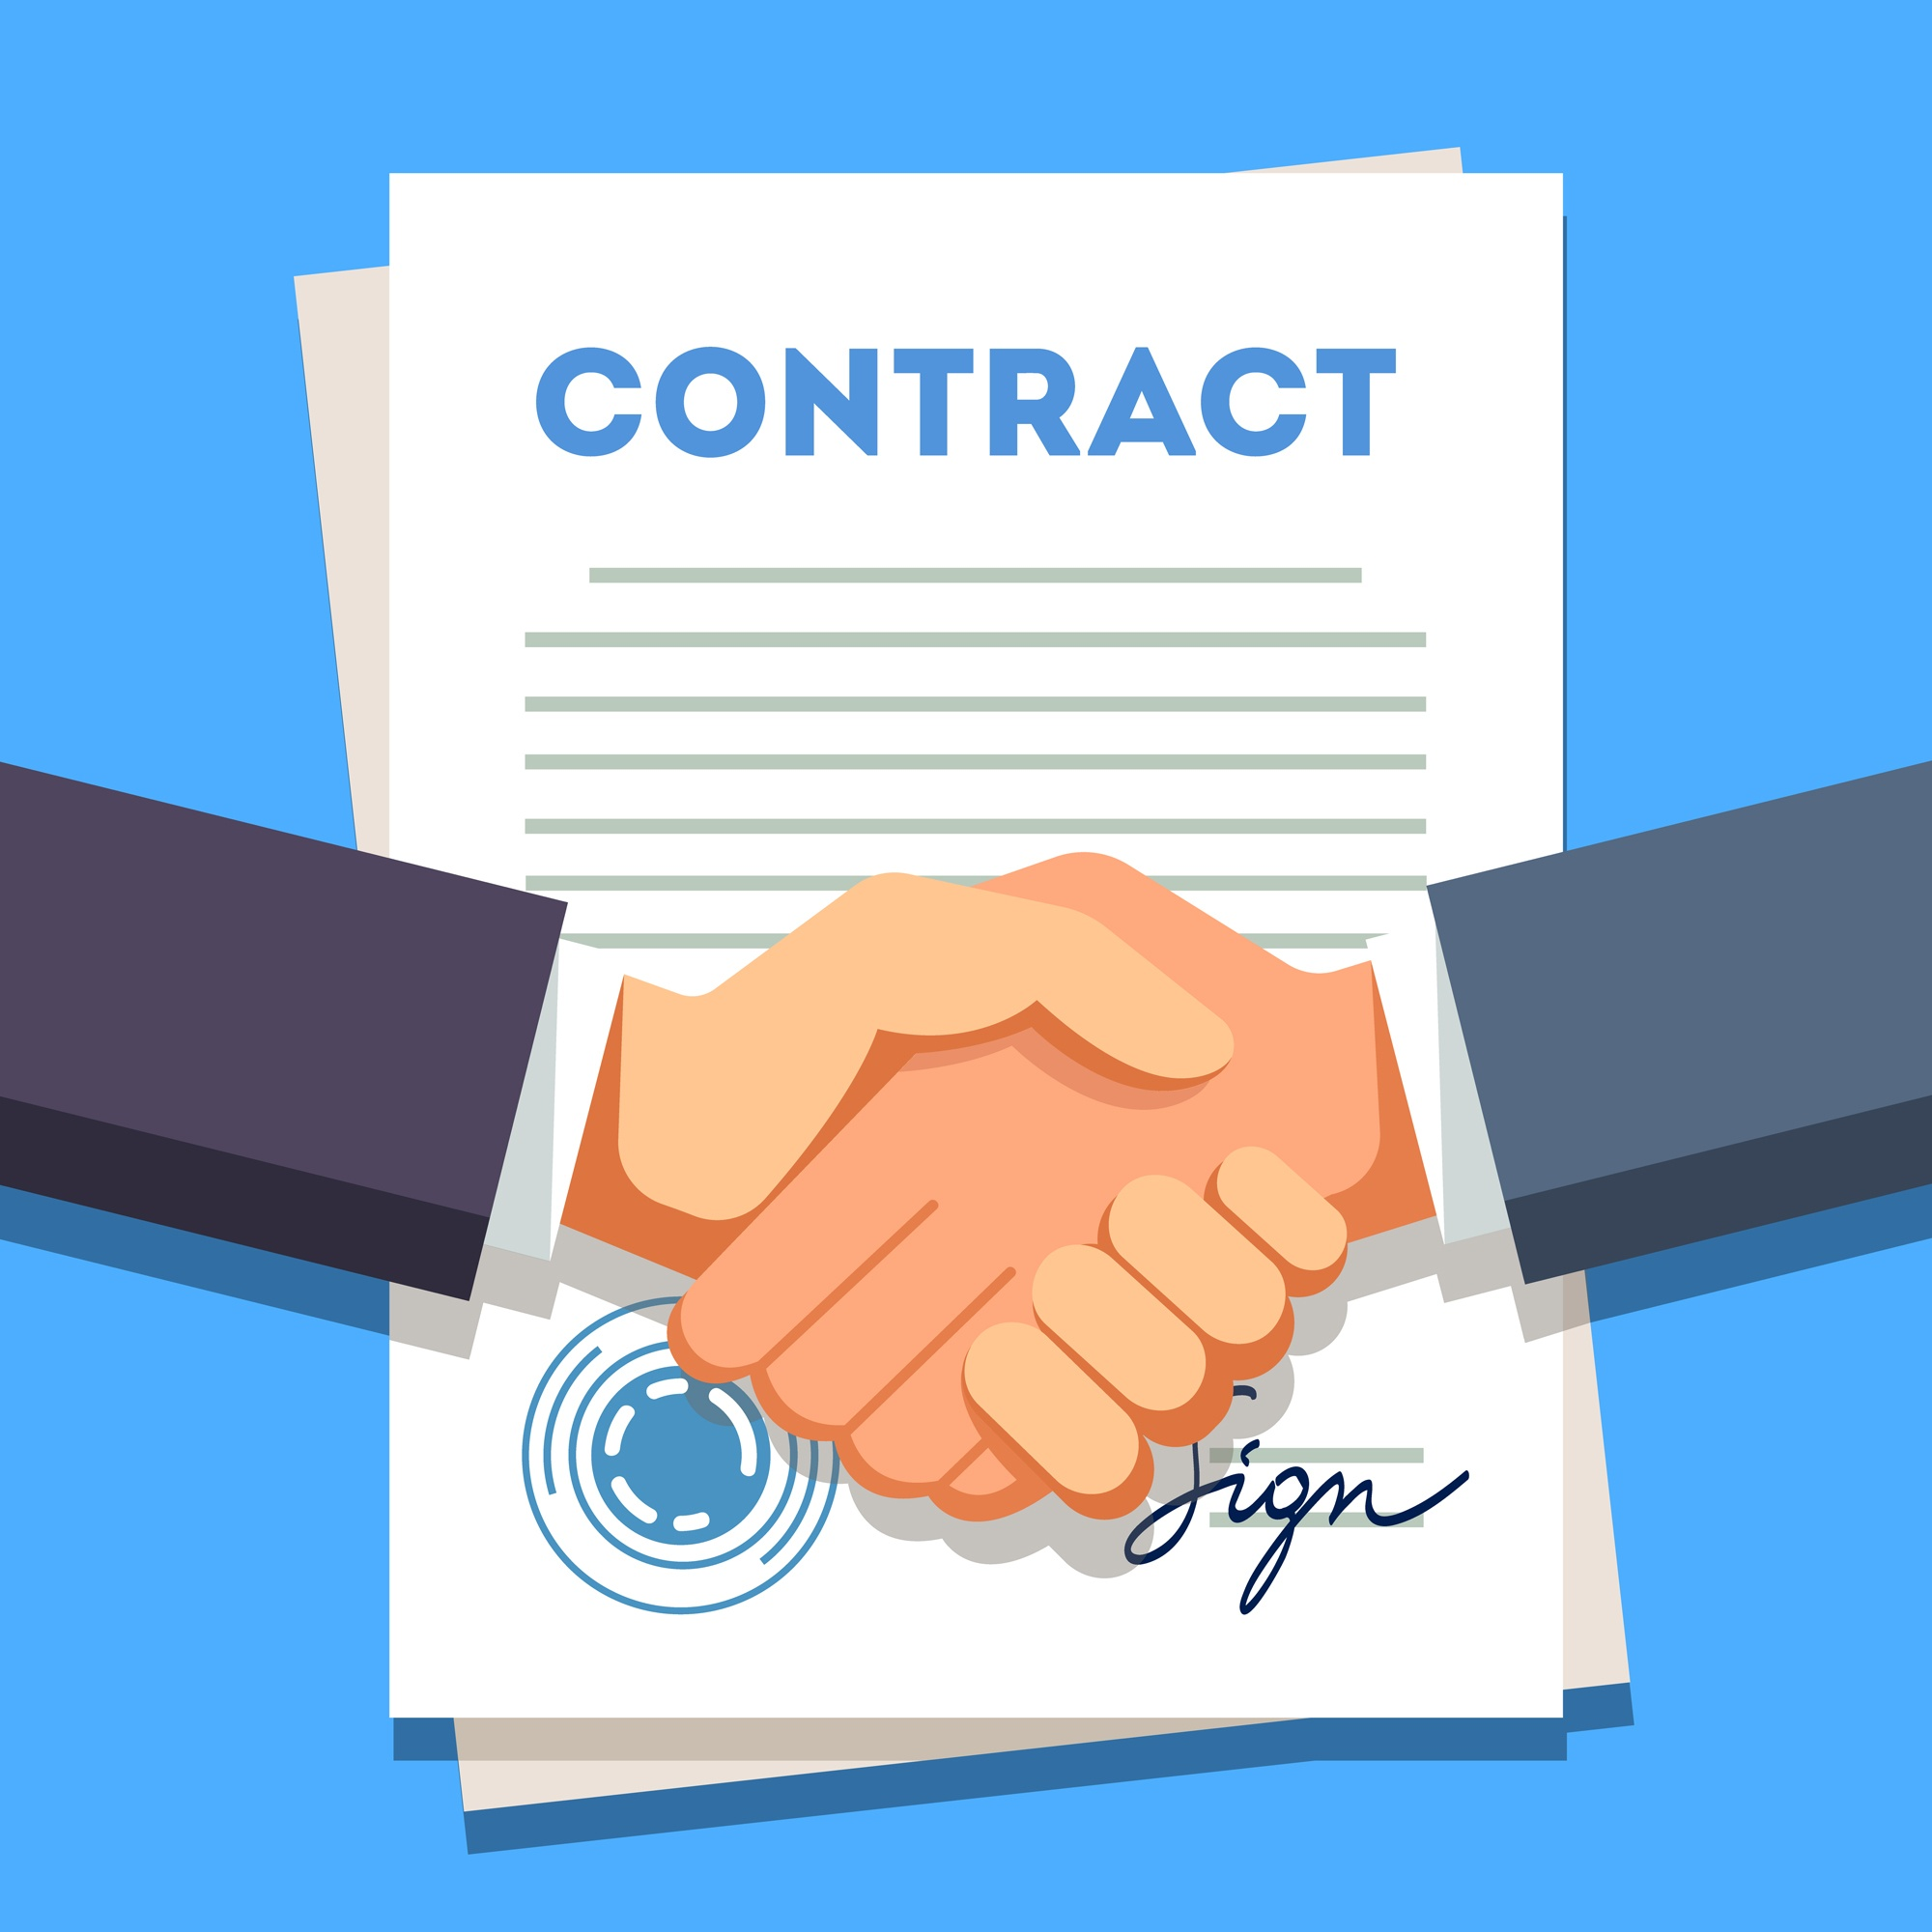 Content types for sales leads contract handshake